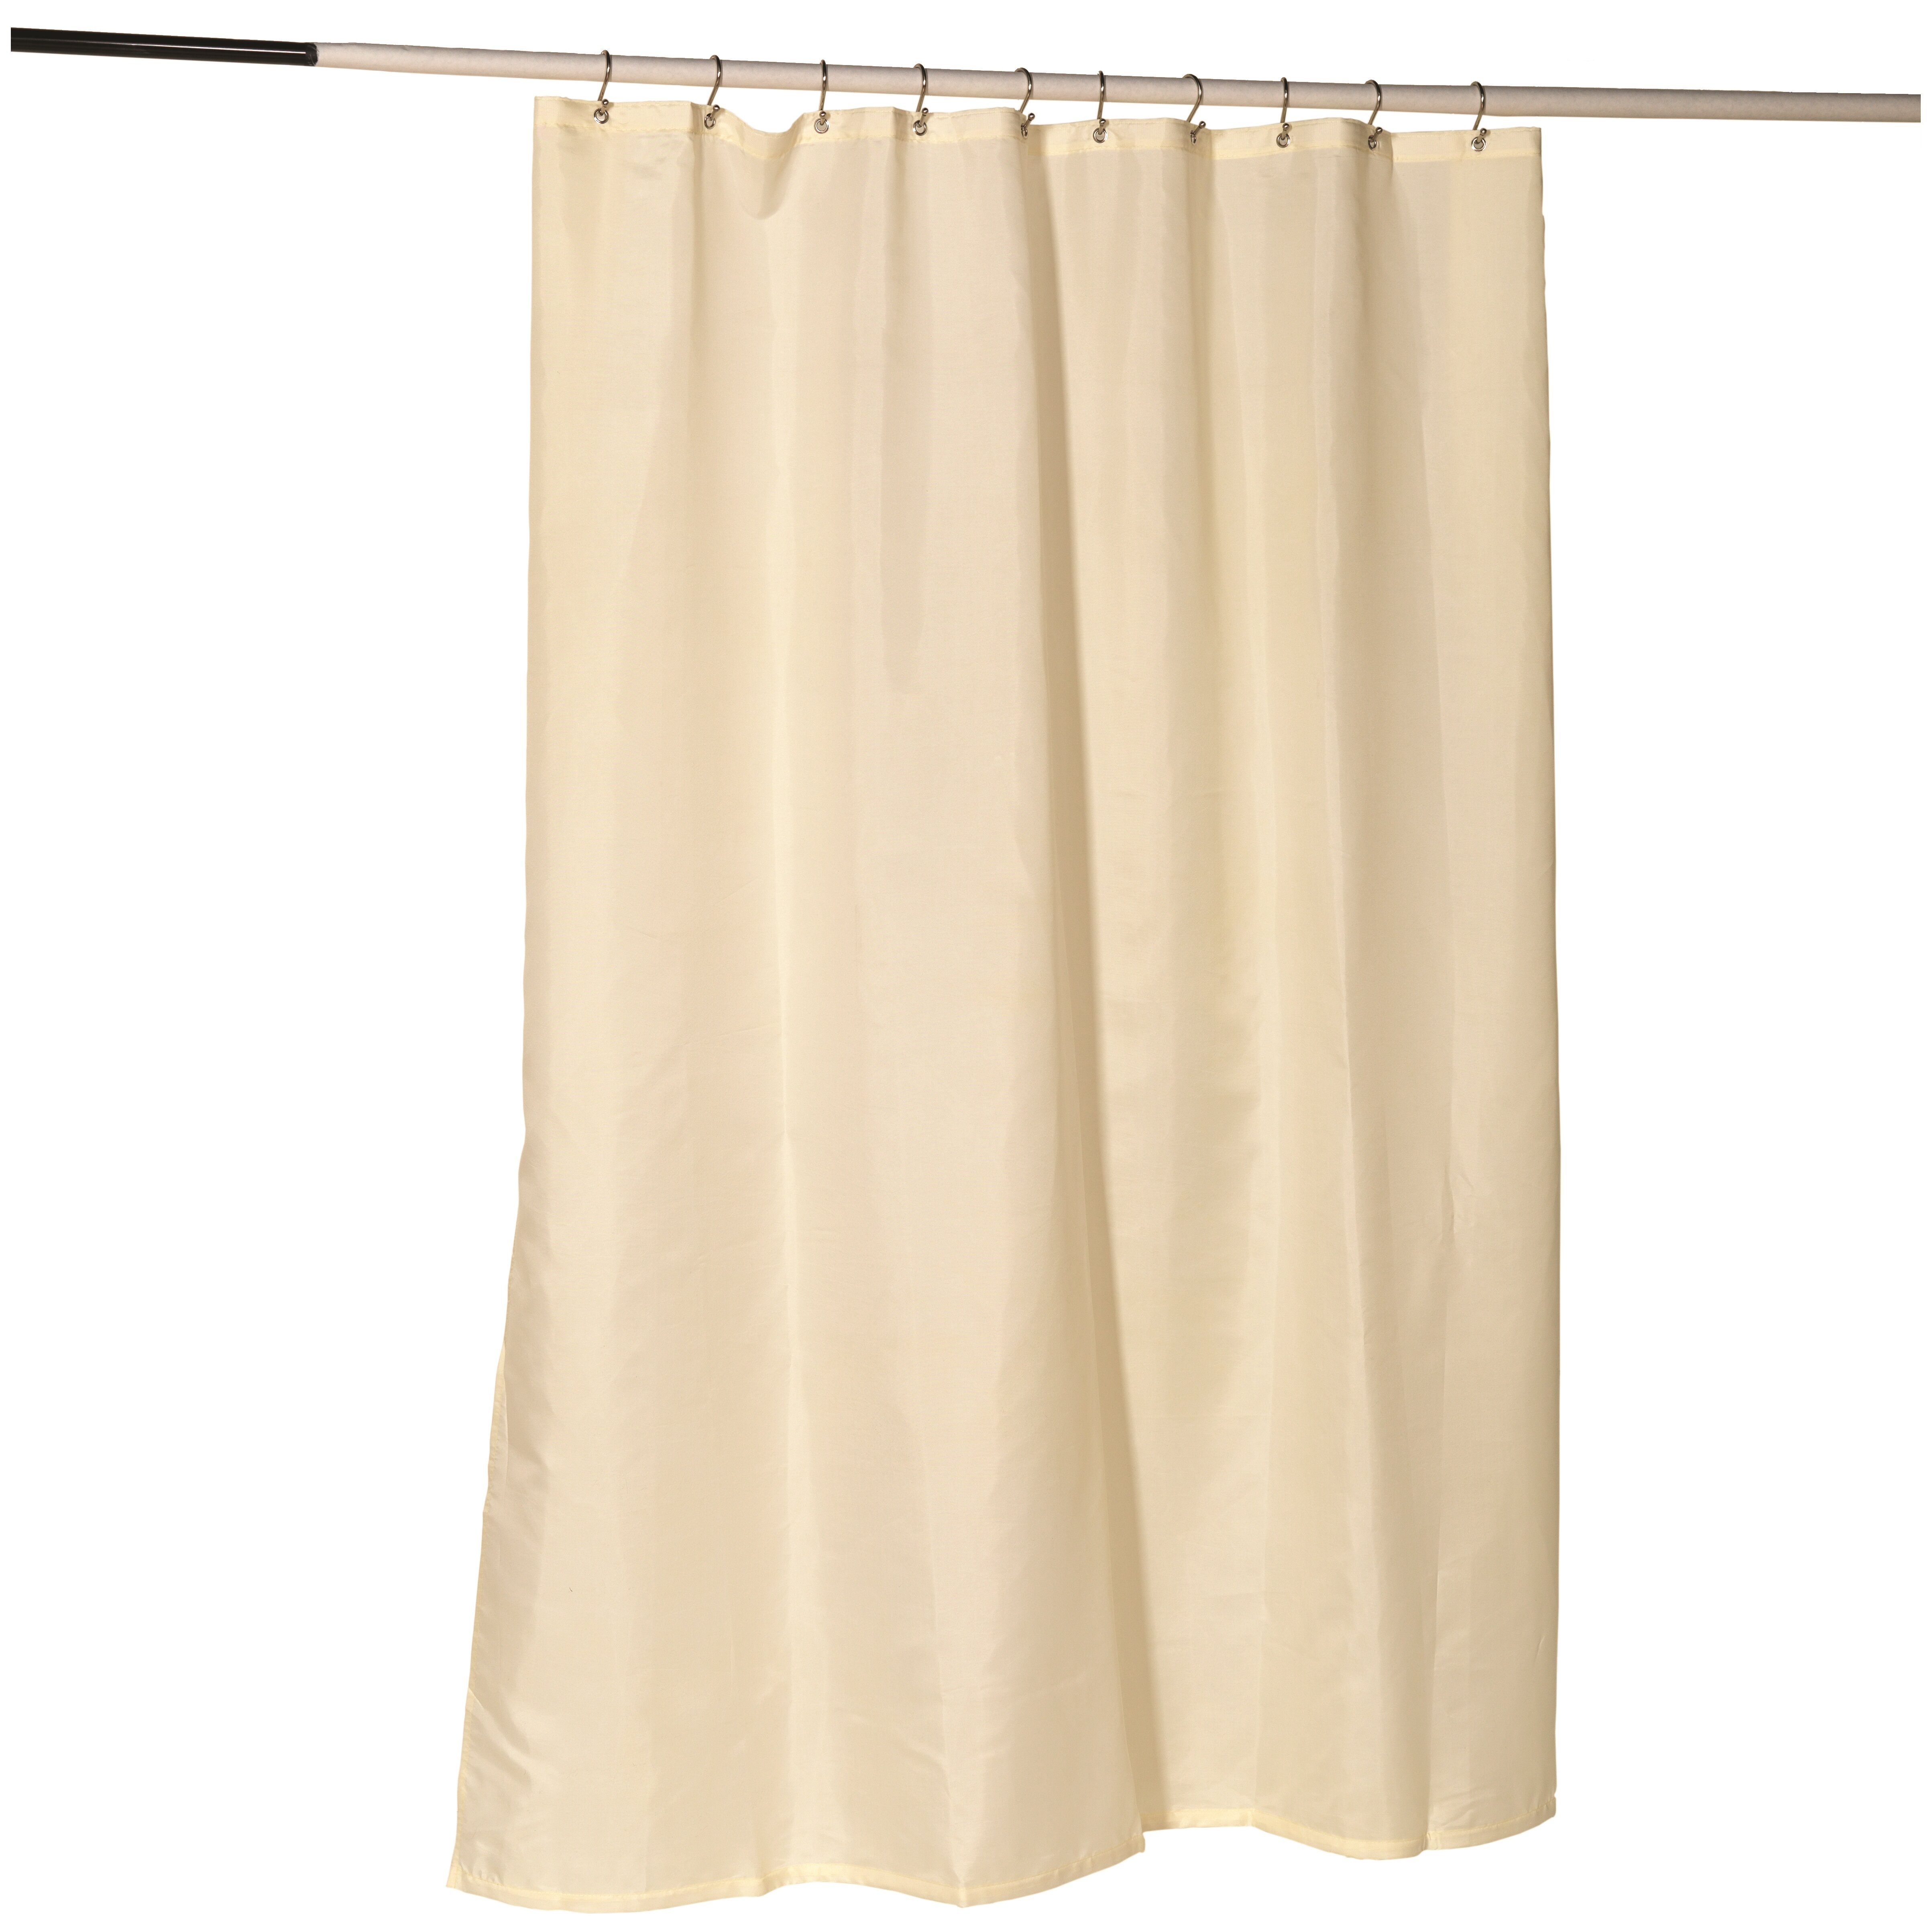 Ben And Jonah Nylon Fabric Shower Curtain Liner With Reinforced Header And Metal Grommets